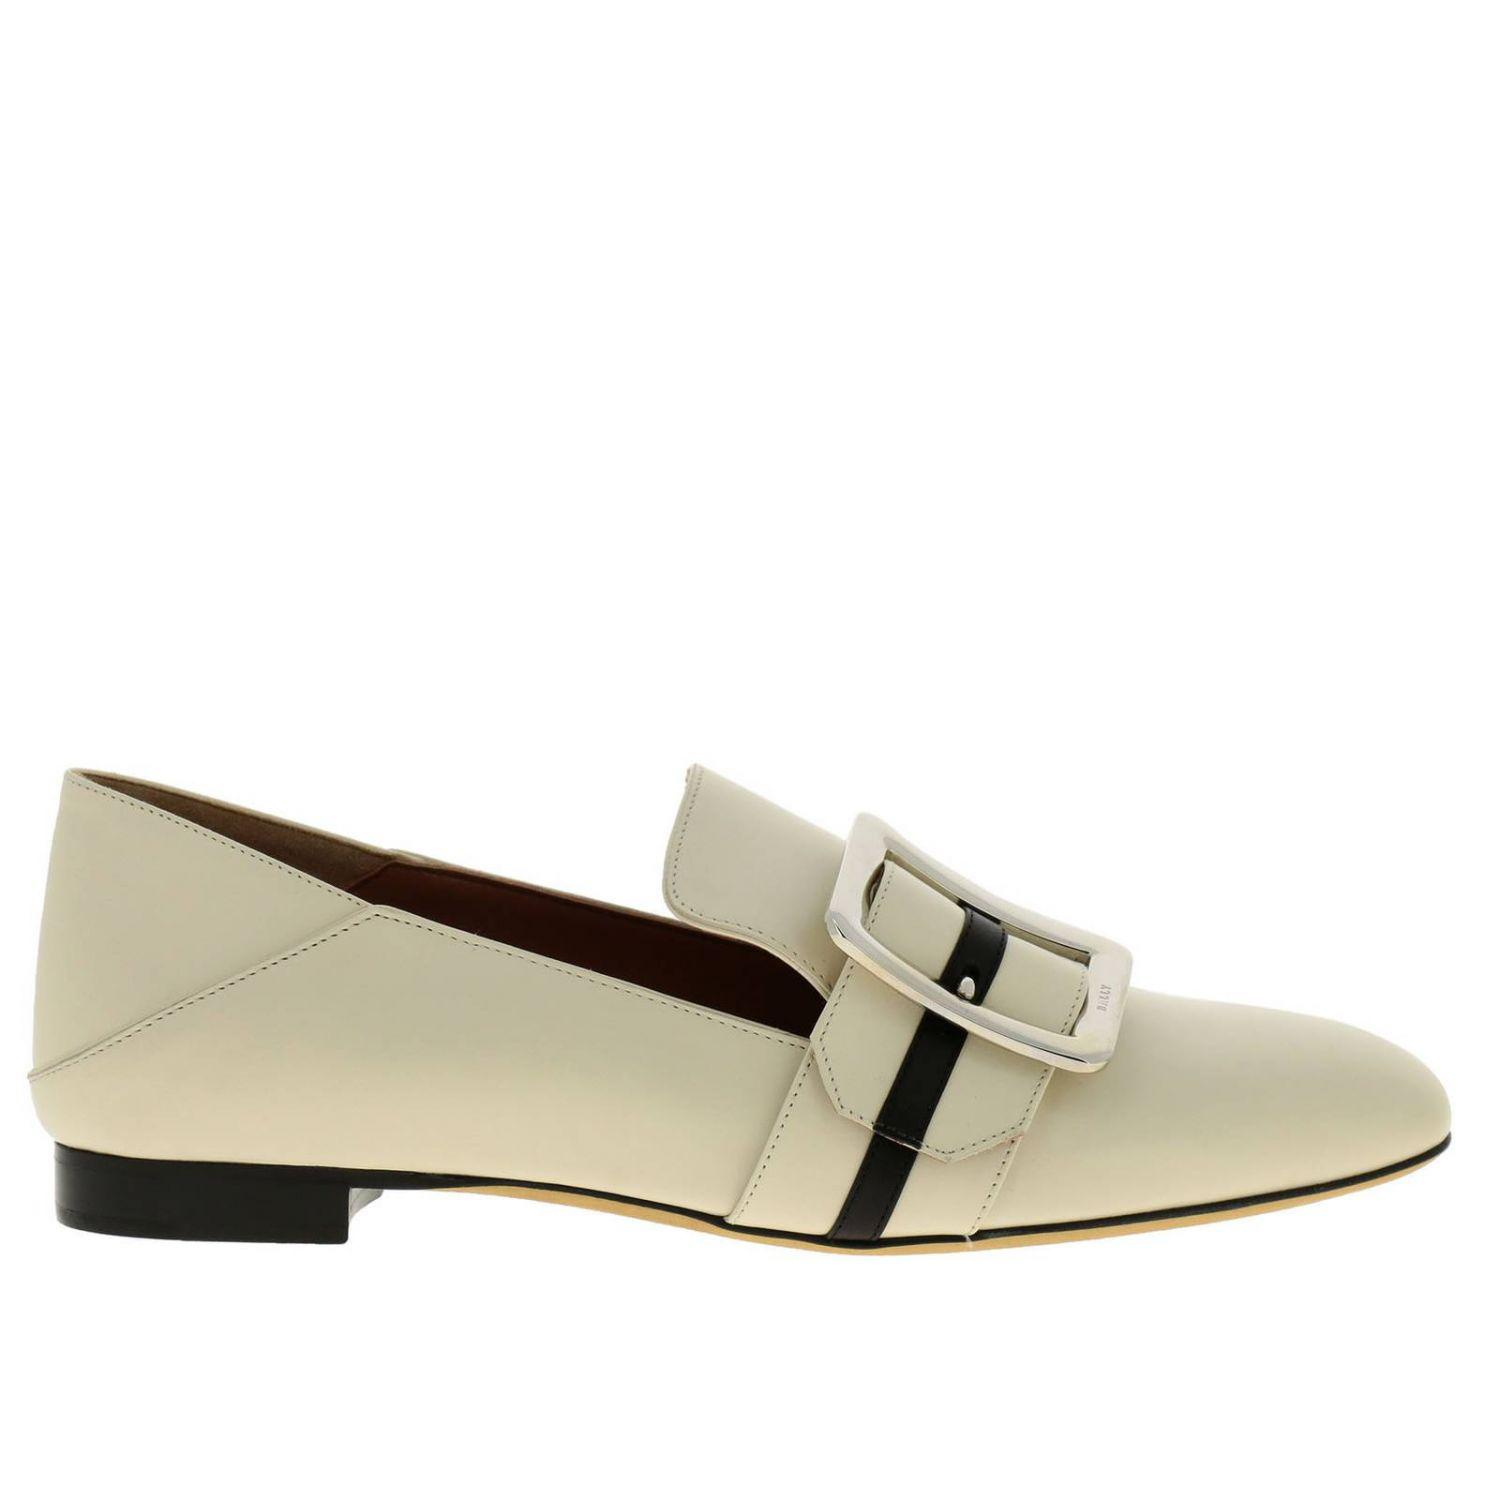 2bd5795e7a6d2 Bally Loafers Shoes Women in Natural - Lyst